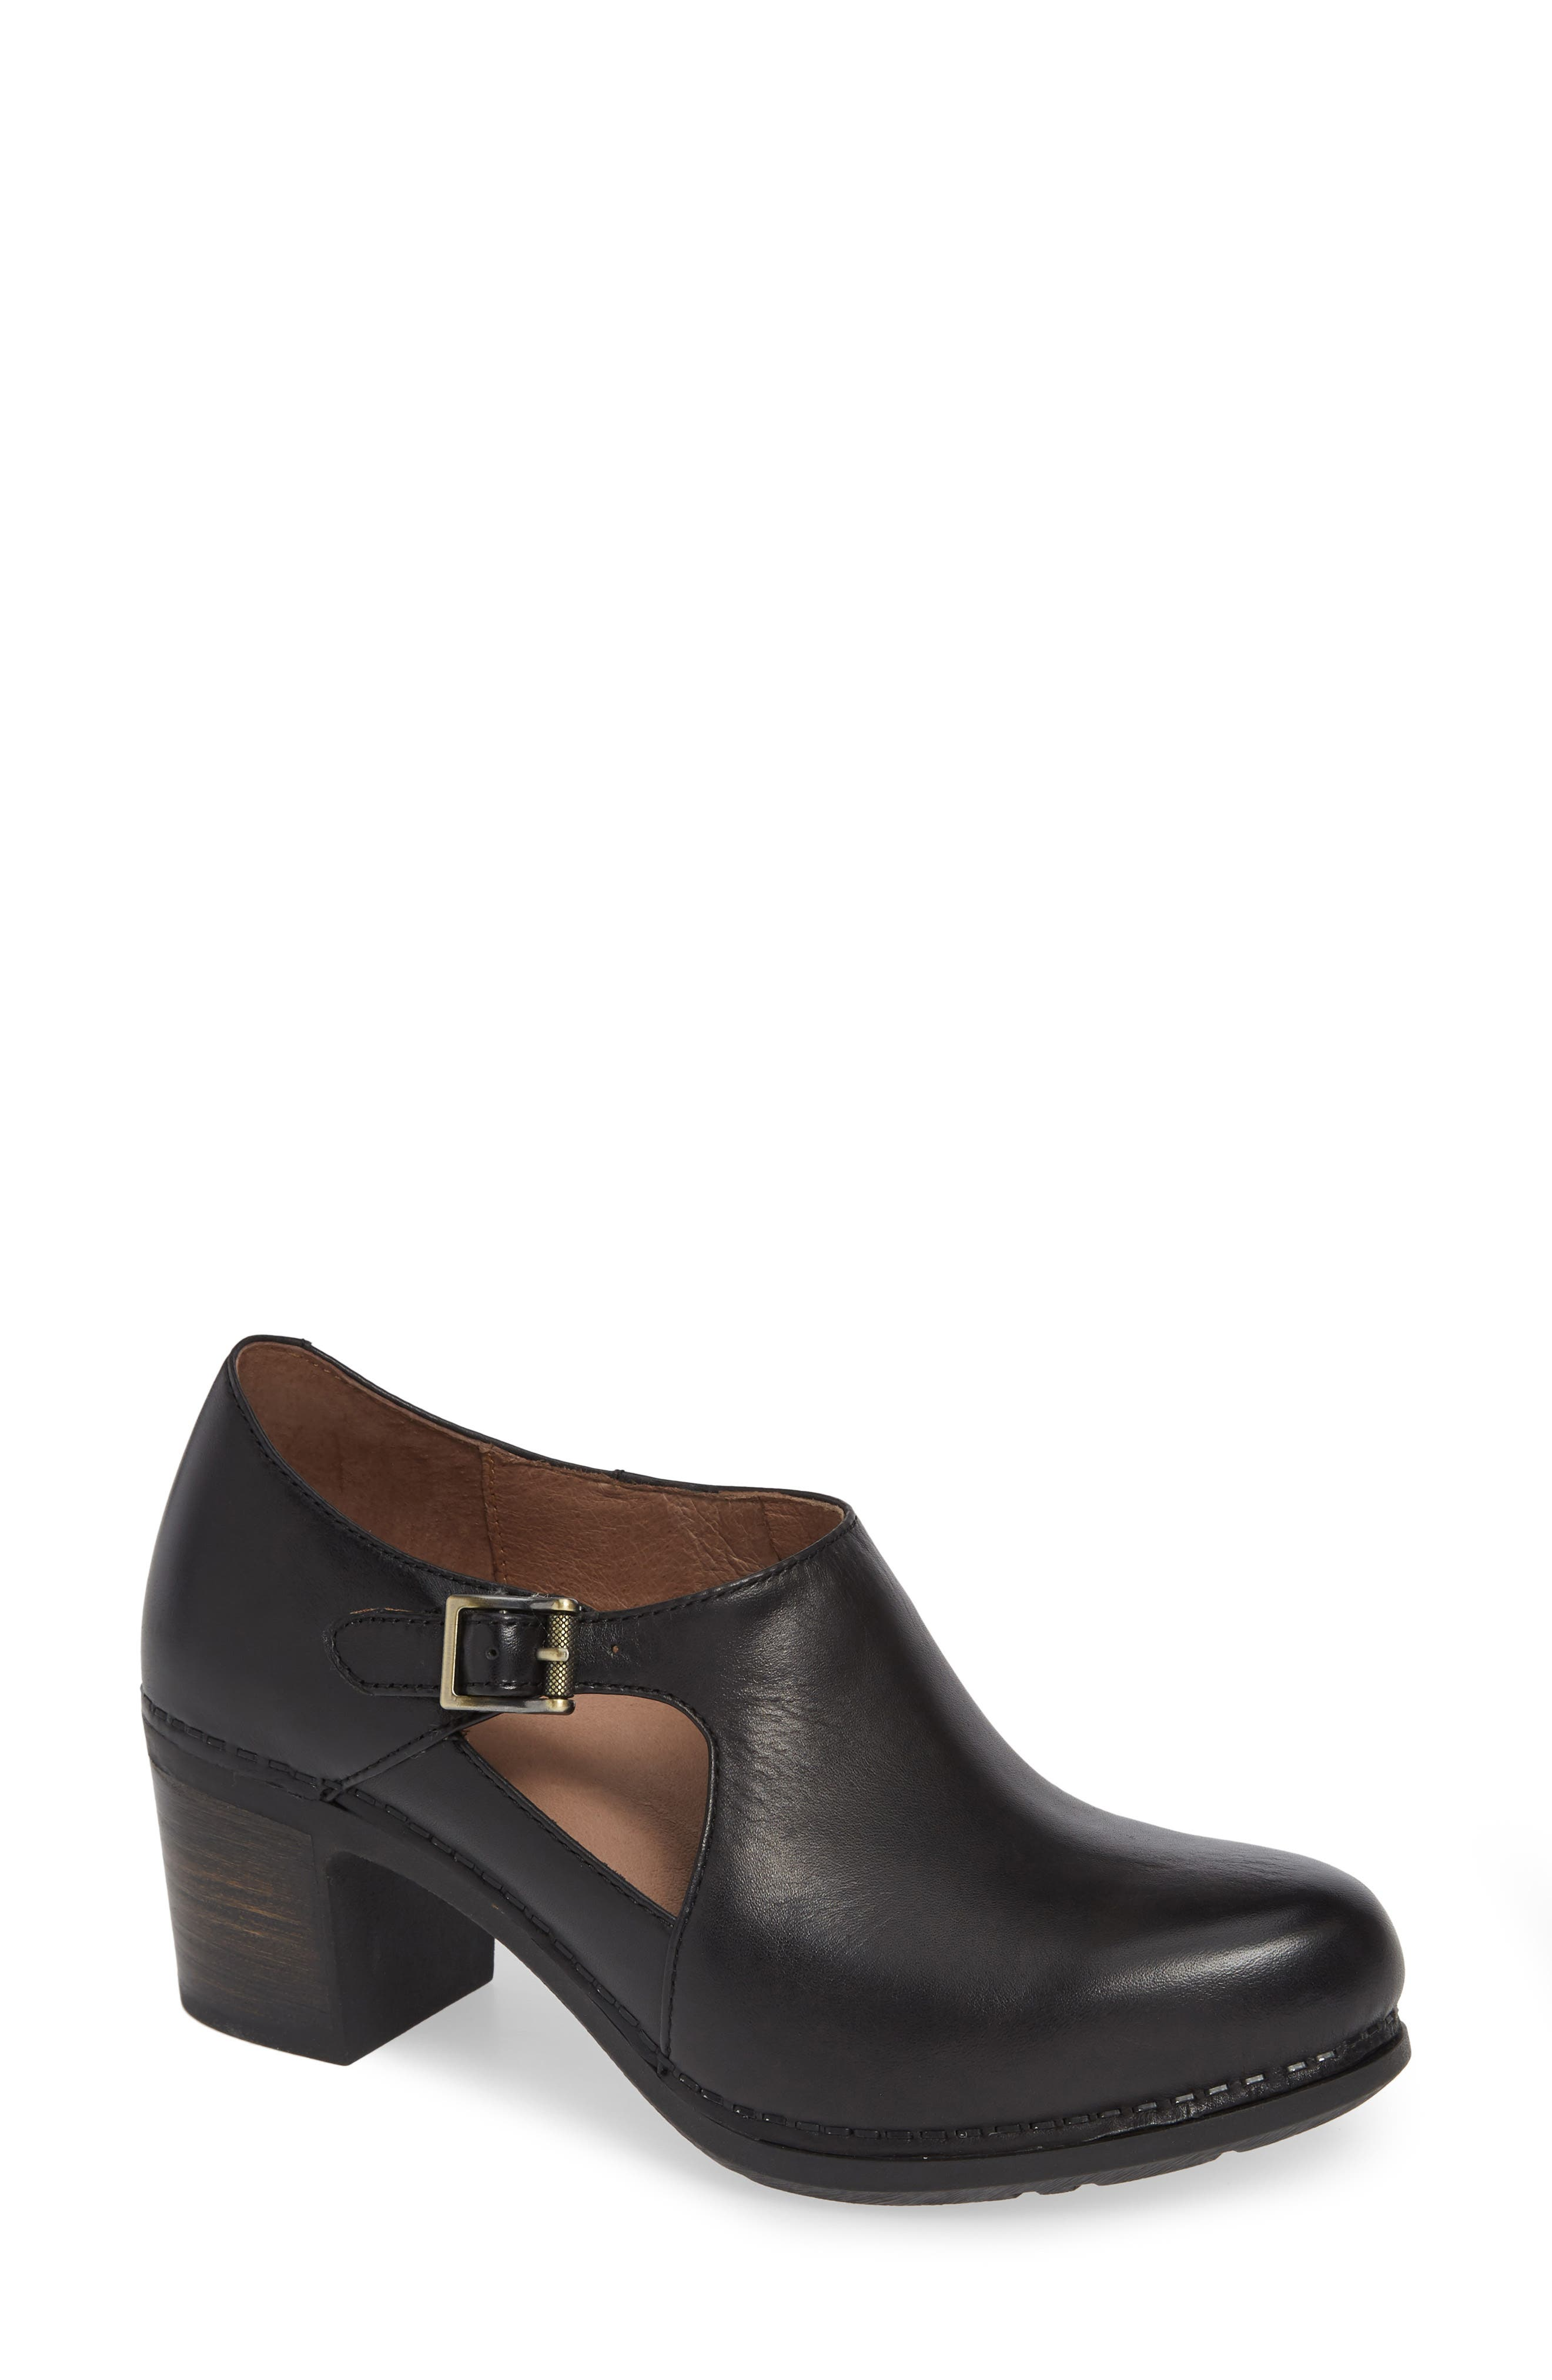 Hollie Bootie,                         Main,                         color, BLACK LEATHER